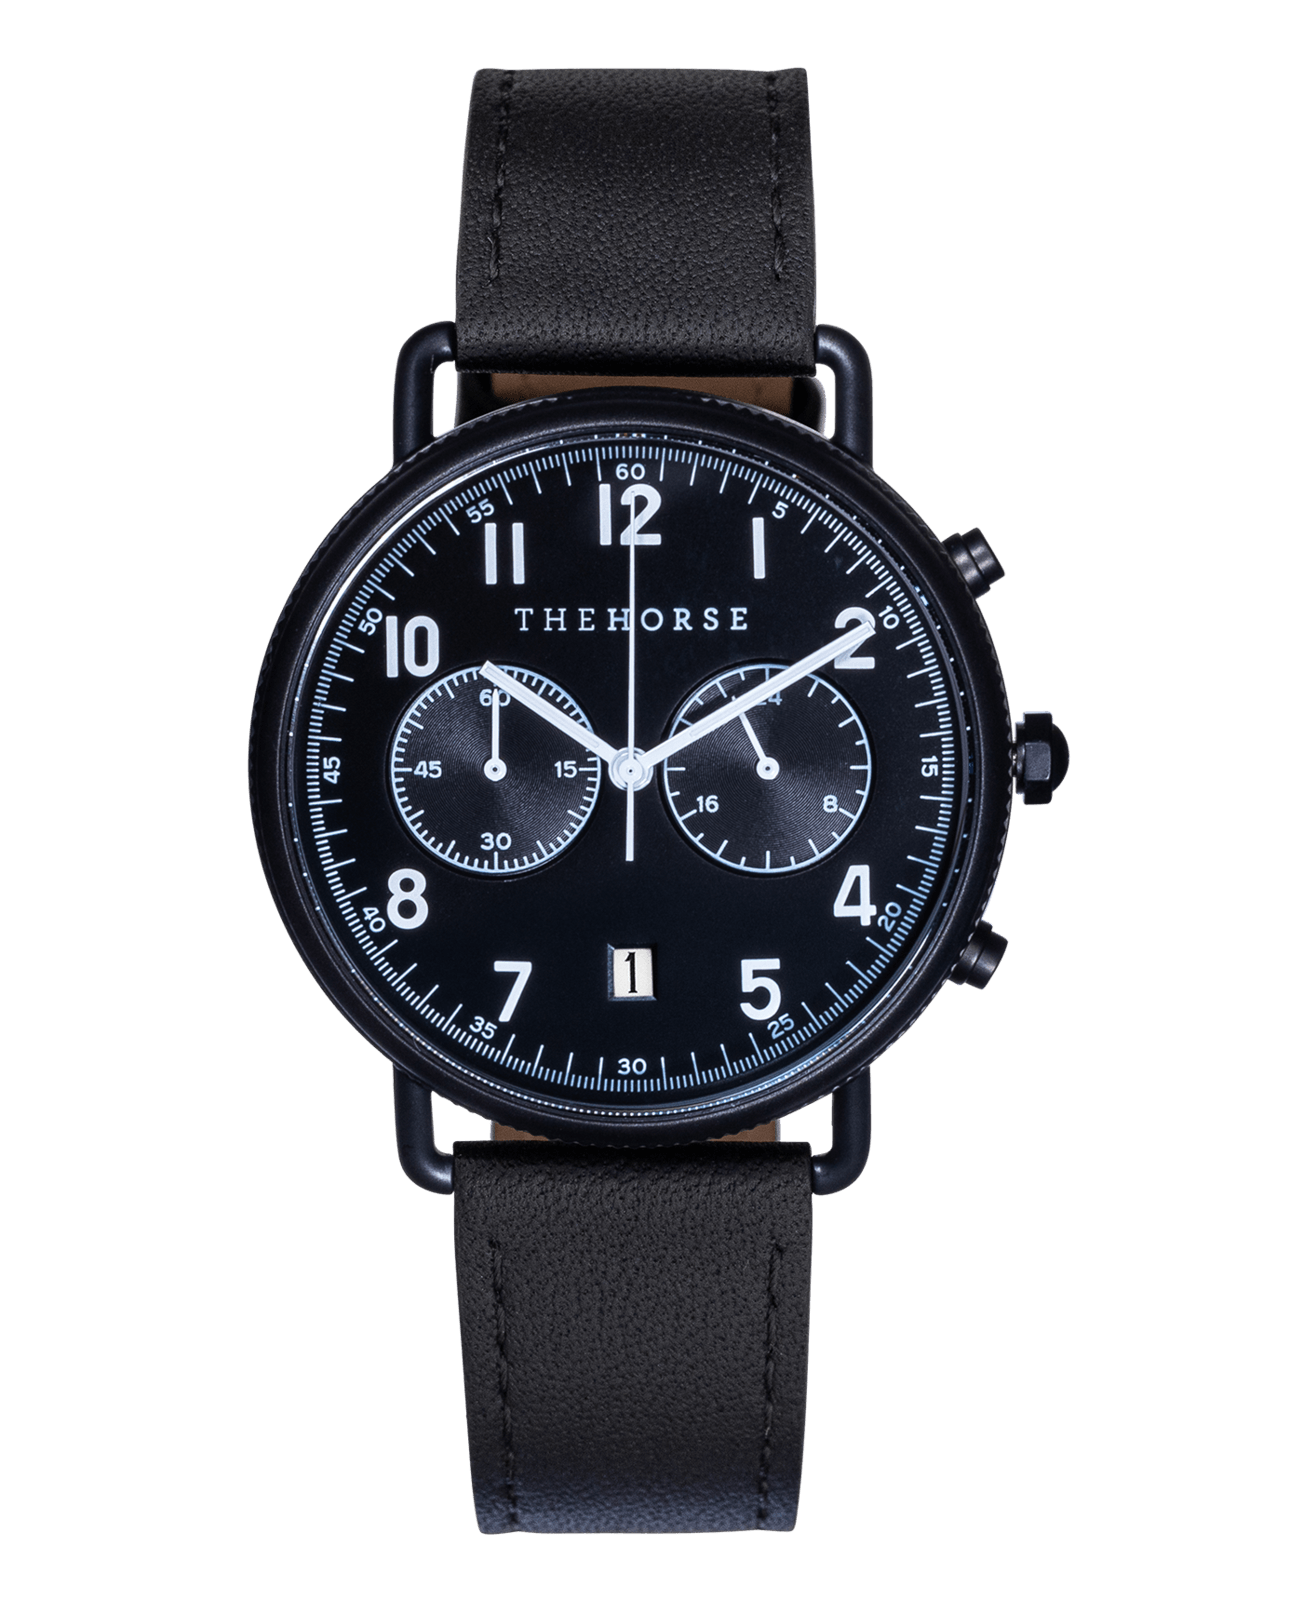 The Mini Chronograph Watch